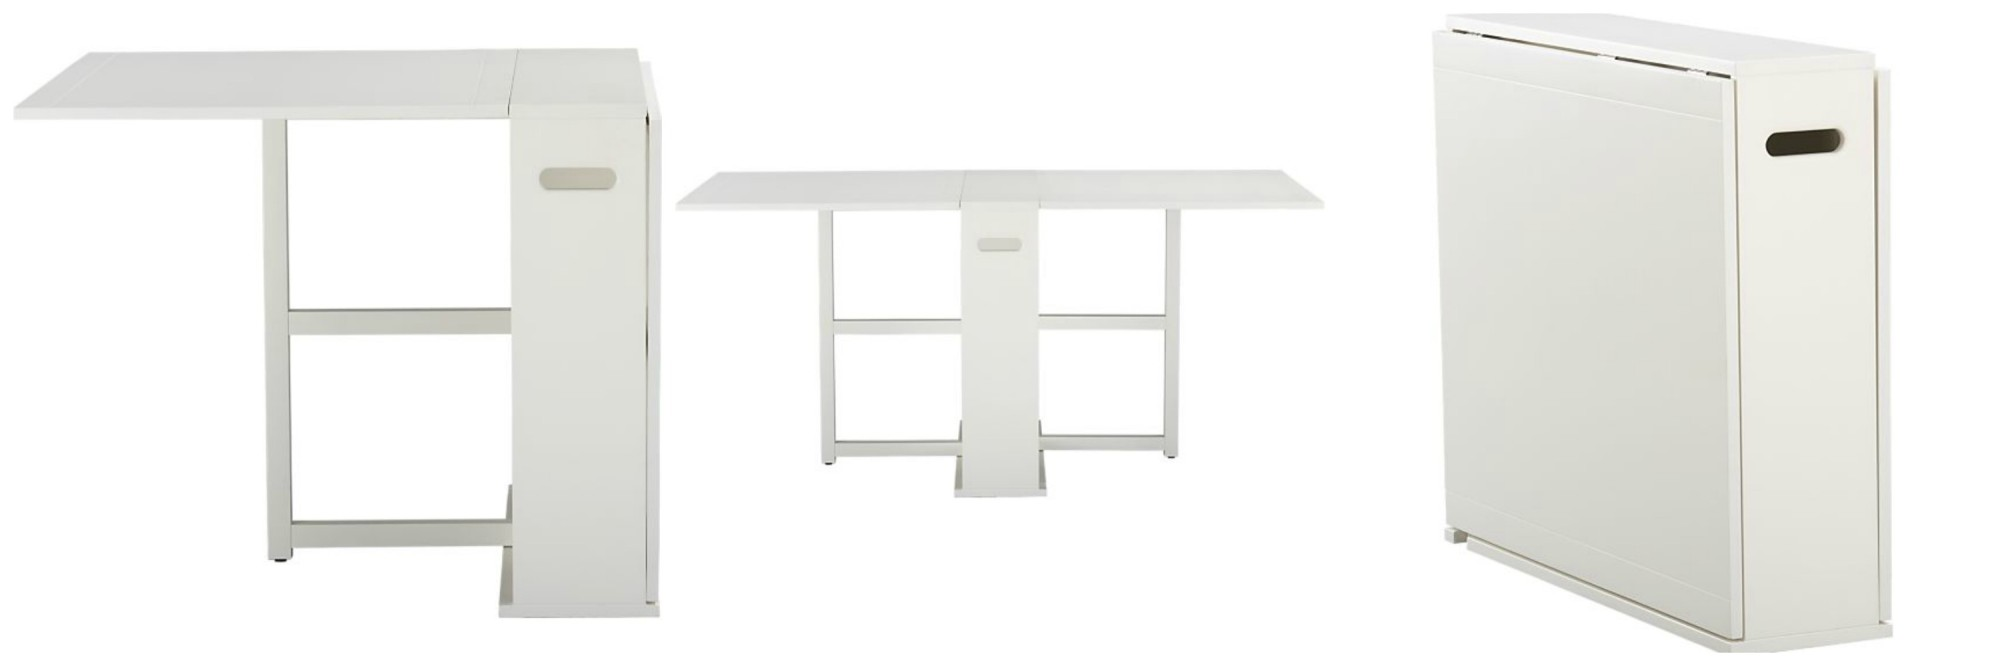 Decor Look Alikes | Crate And Barrel Span Gateleg Dining Table